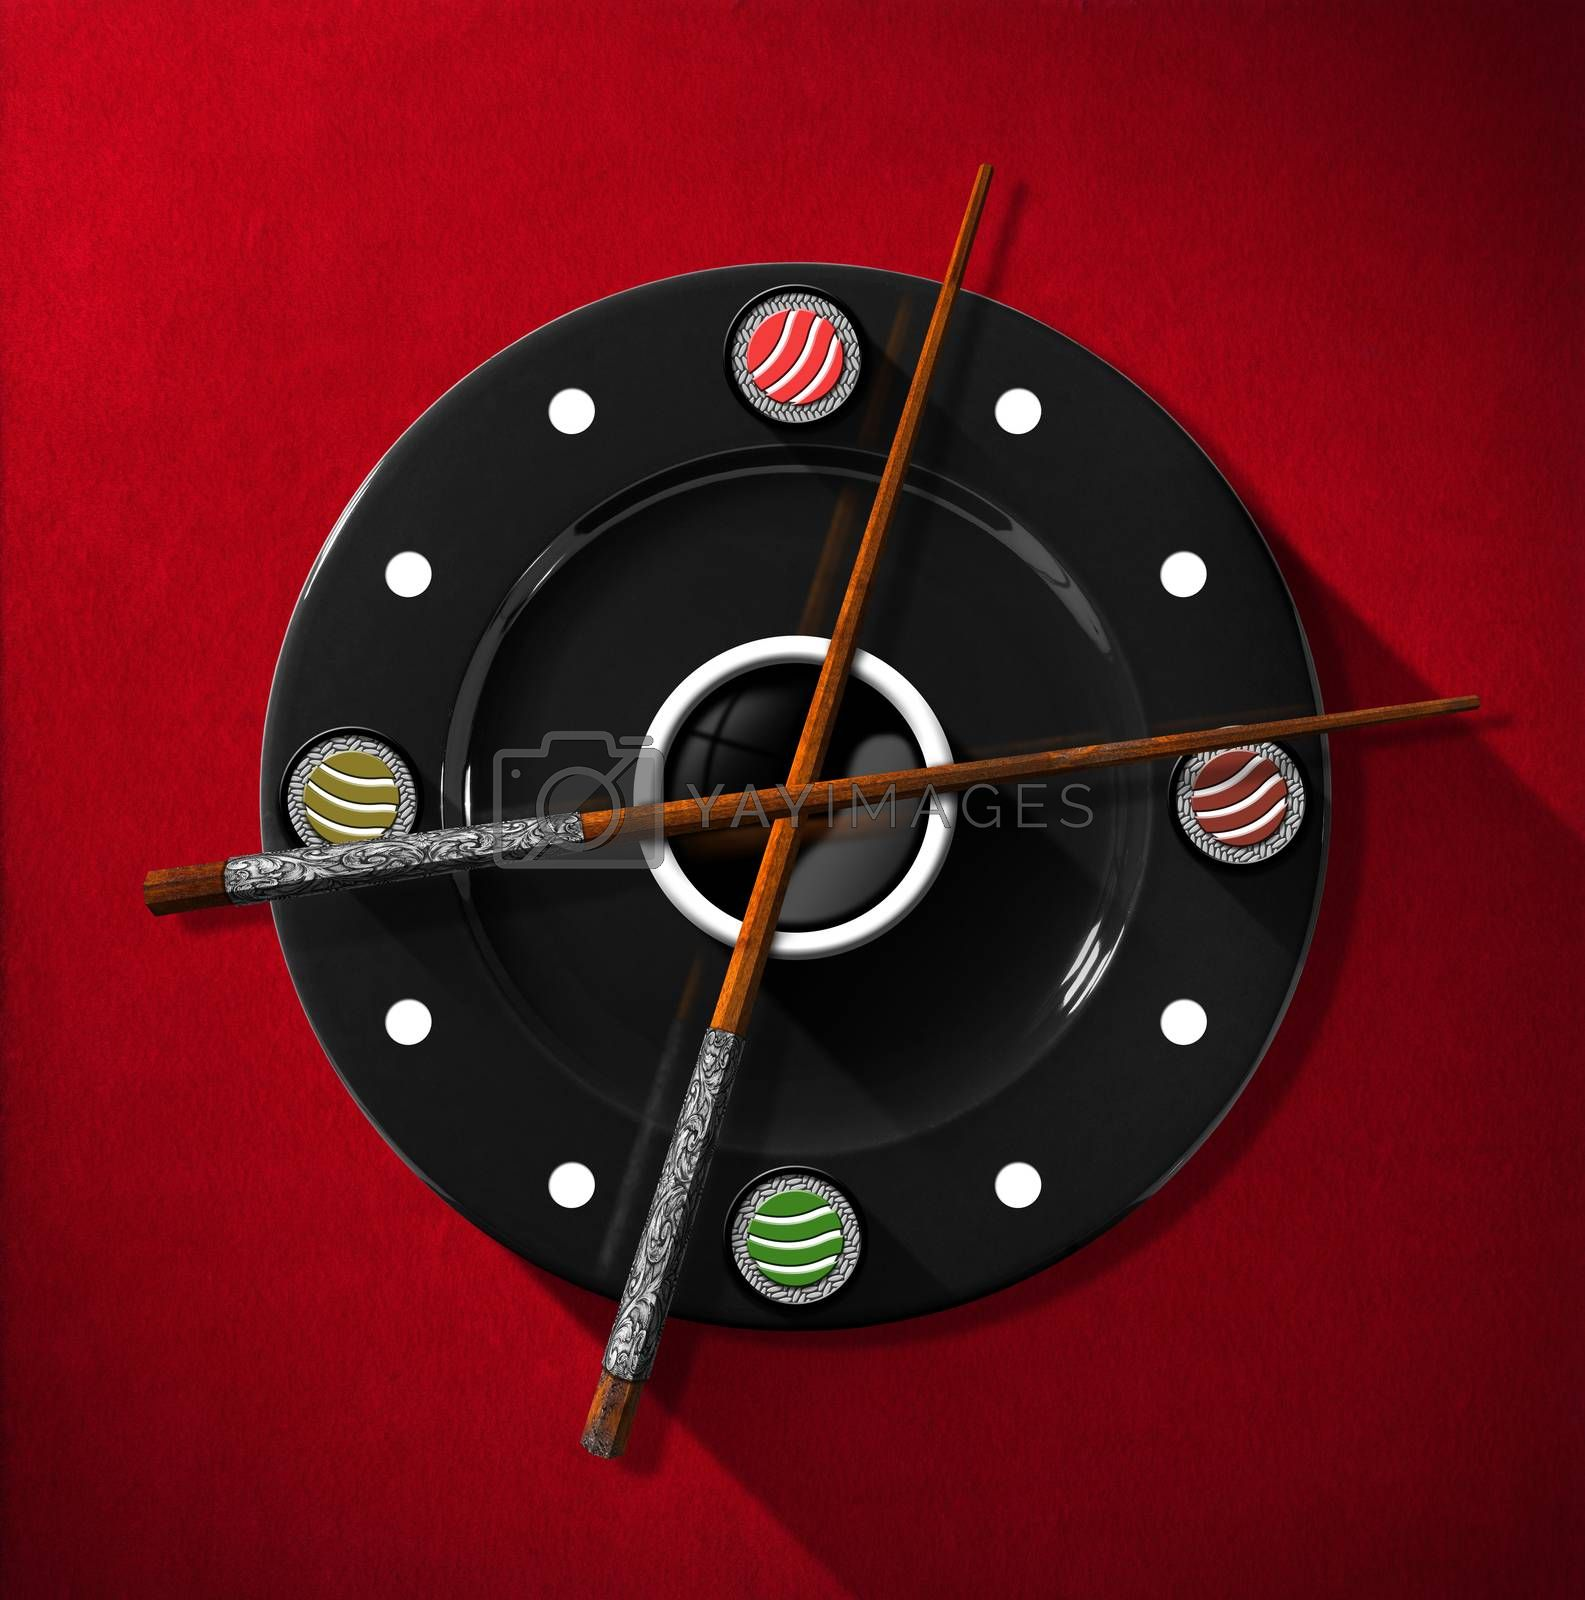 Clock composed by a black plate with wooden and silver chopsticks in the place of the clock hands and four sushi rolls. On a red velvet background